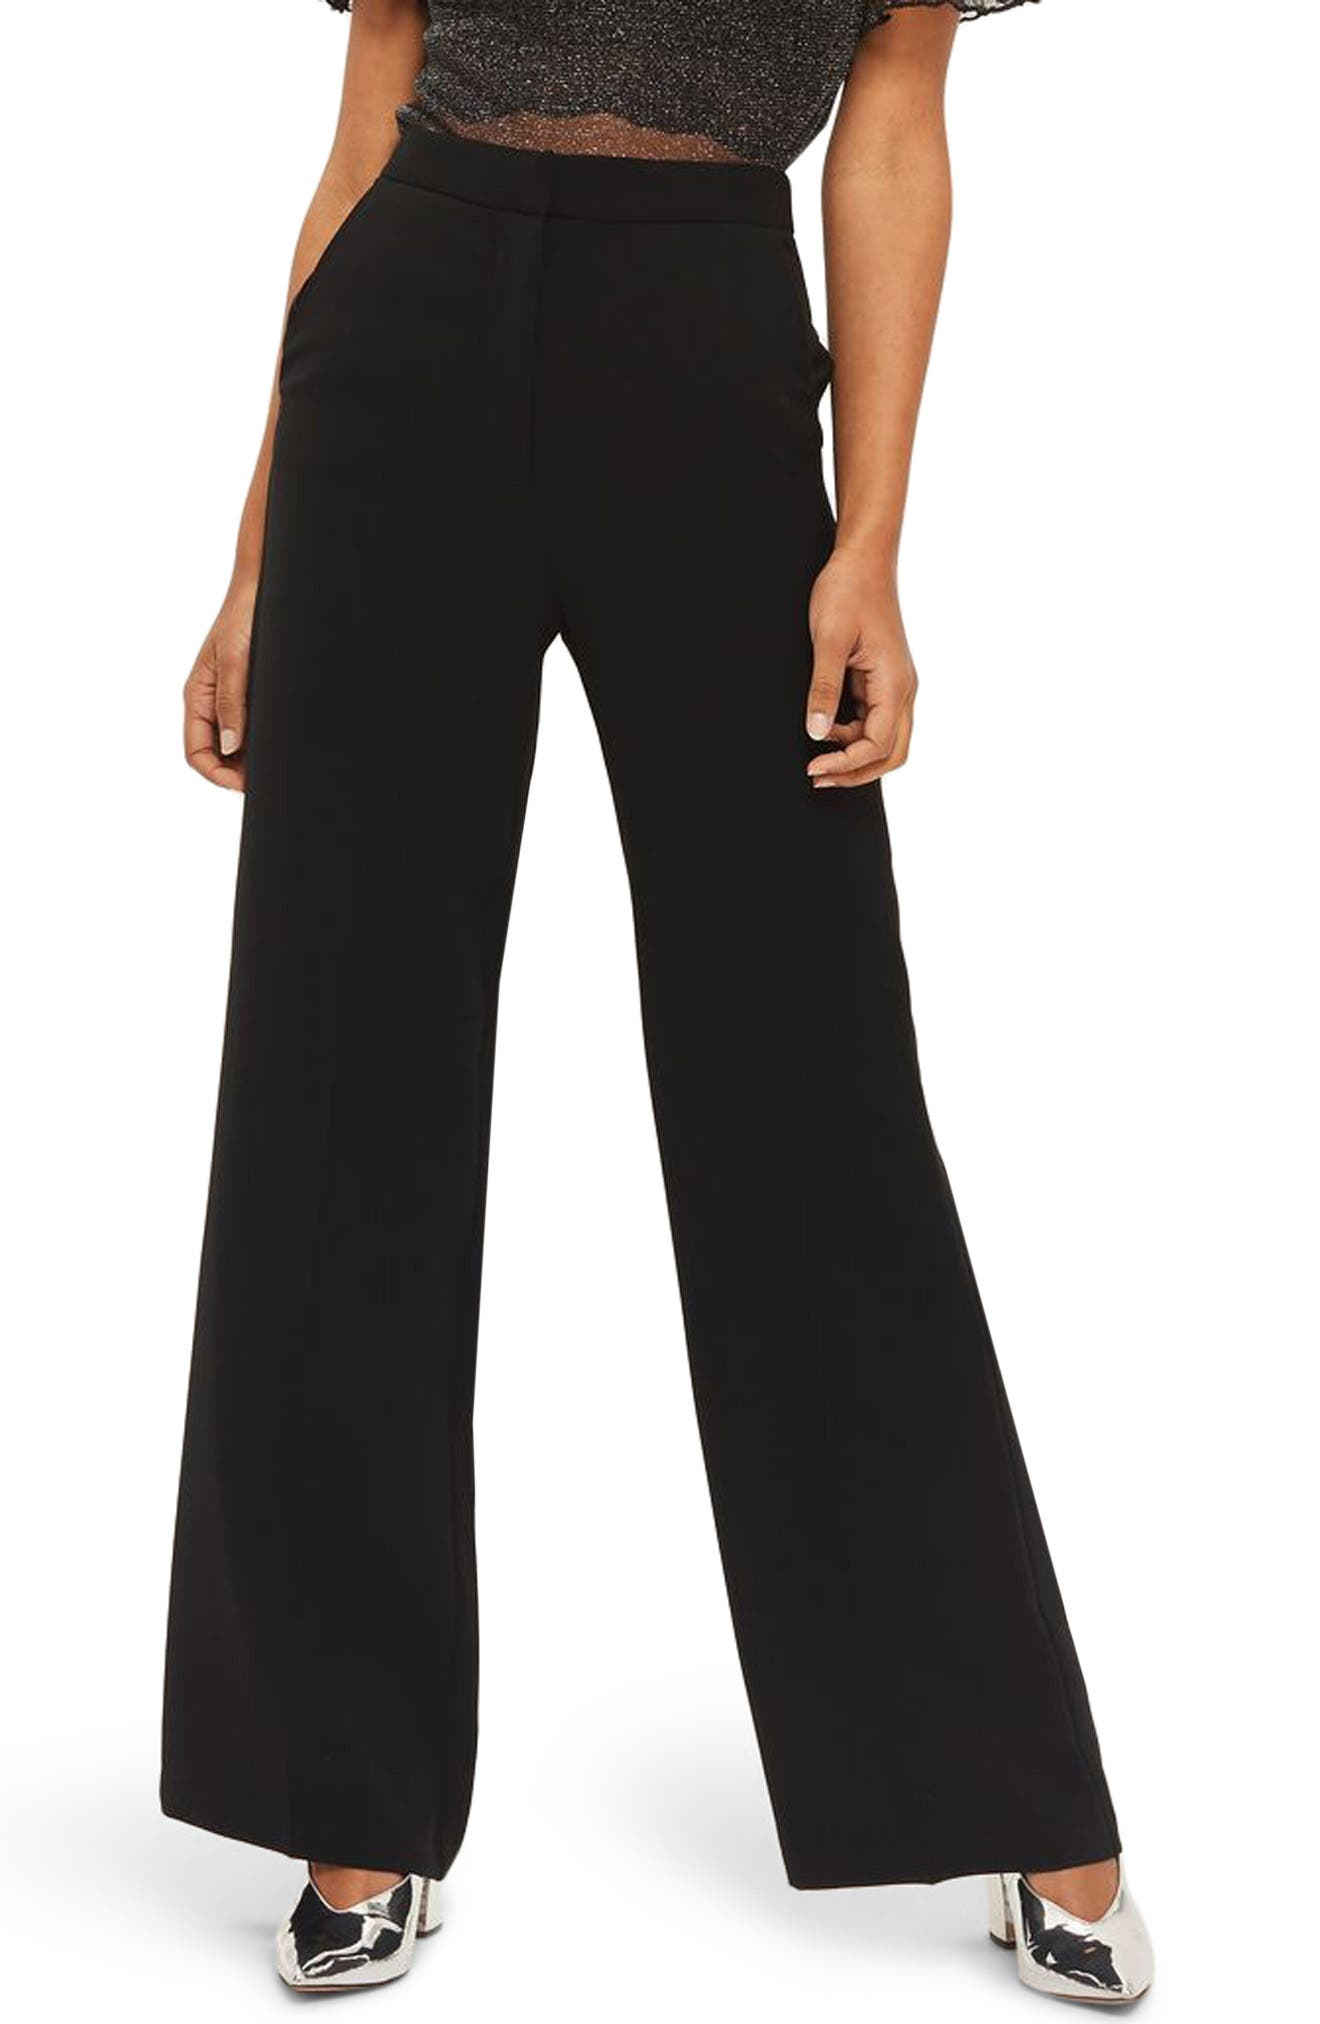 High Waist Wide Leg Trousers,                             Main thumbnail 1, color,                             Black